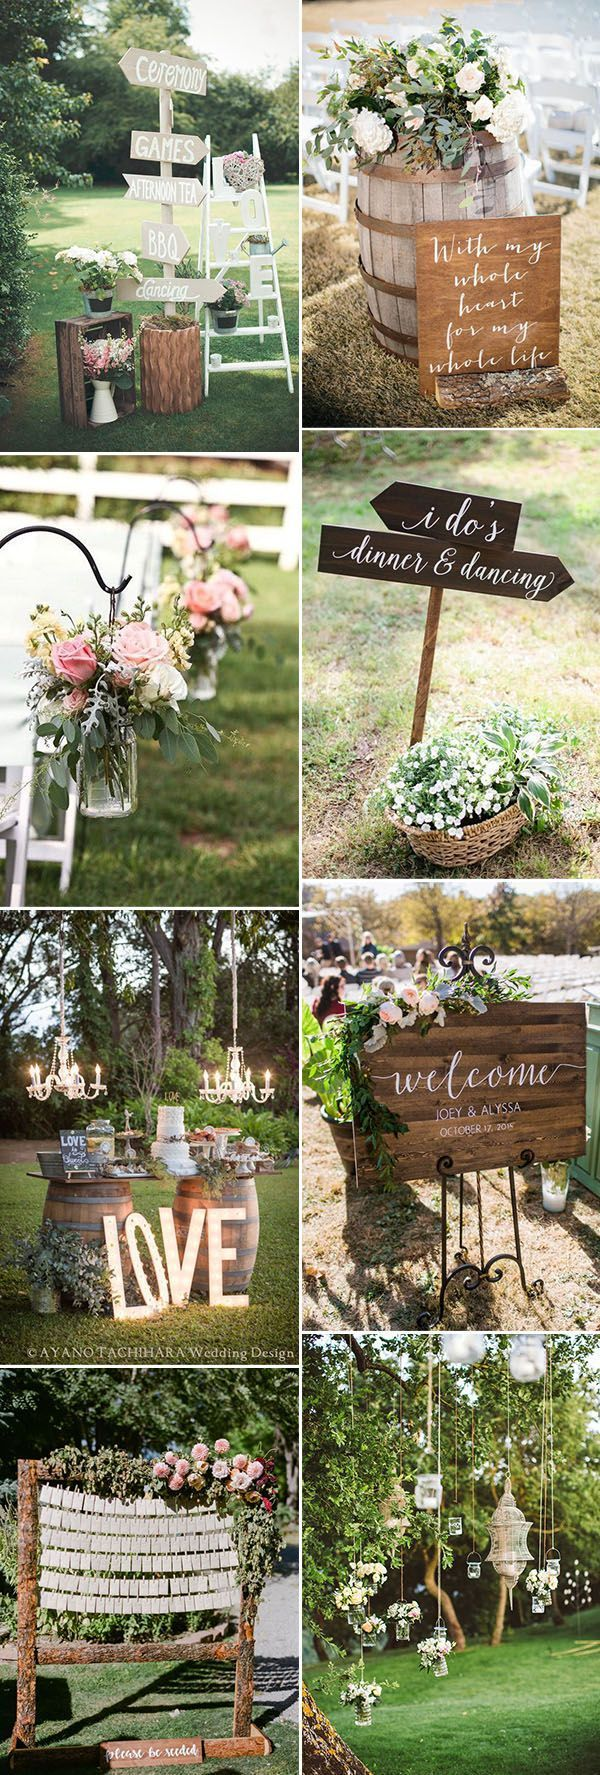 most inspiring gardeninspired wedding ideas american wedding